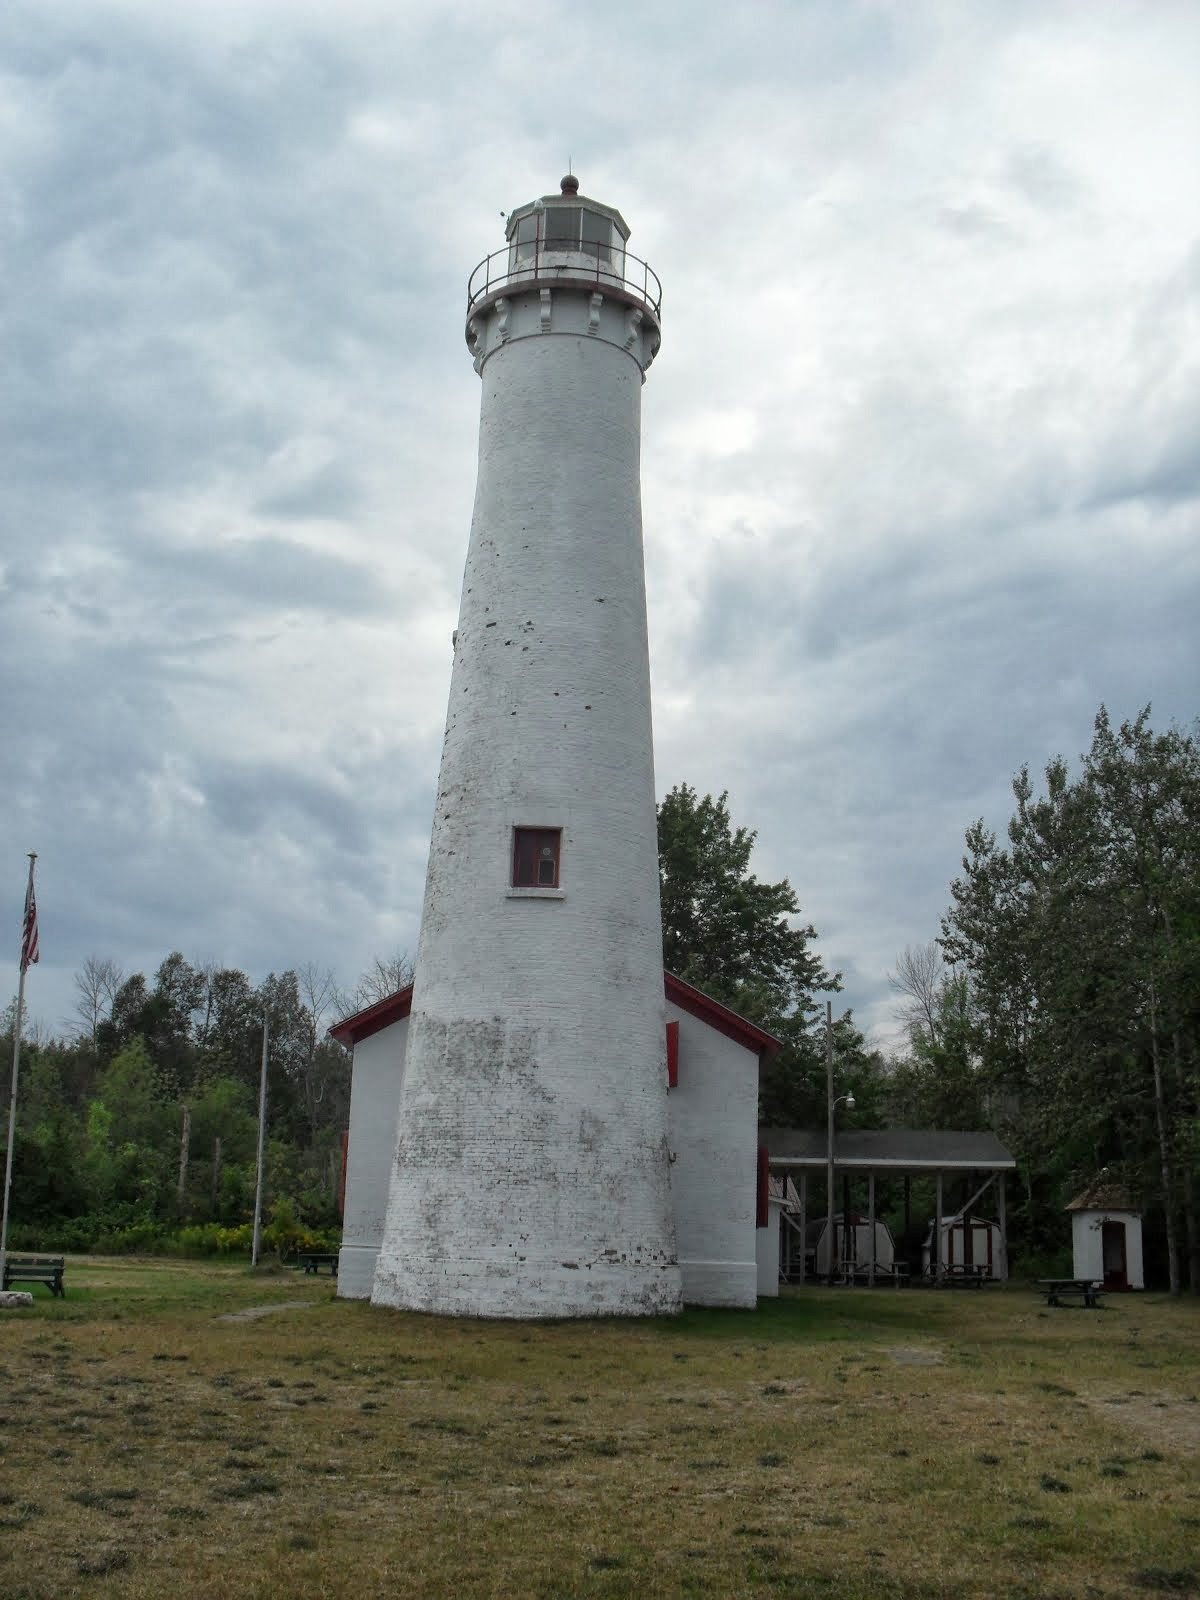 Photos of some lighthouses on the Great Lakes-their storied history of guiding ships to safety.